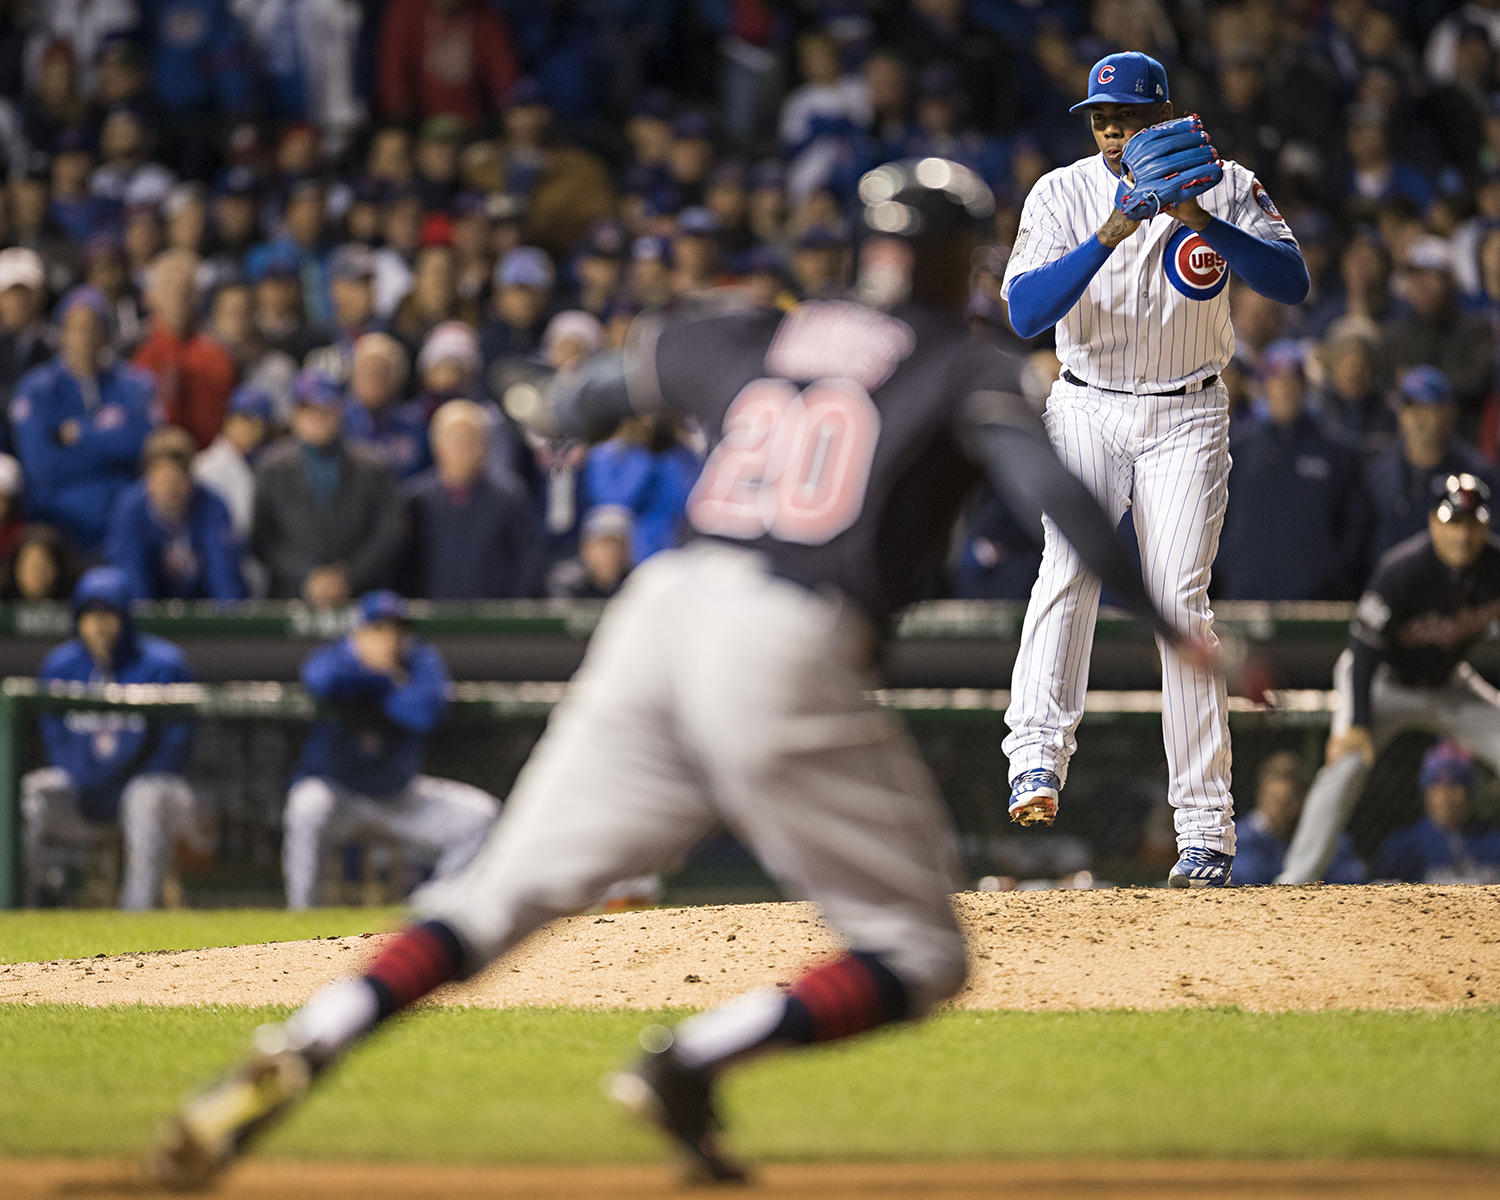 Rajai Davis of the Cleveland Indians steals second as Aroldis Chapman of the Chicago Cubs pitches during Game 5 of the 2016 World Series between the Cleveland Indians and the Chicago Cubs at Wrigley Field on October 30, 2016. (Jean Fruth / National Baseball Hall of Fame)